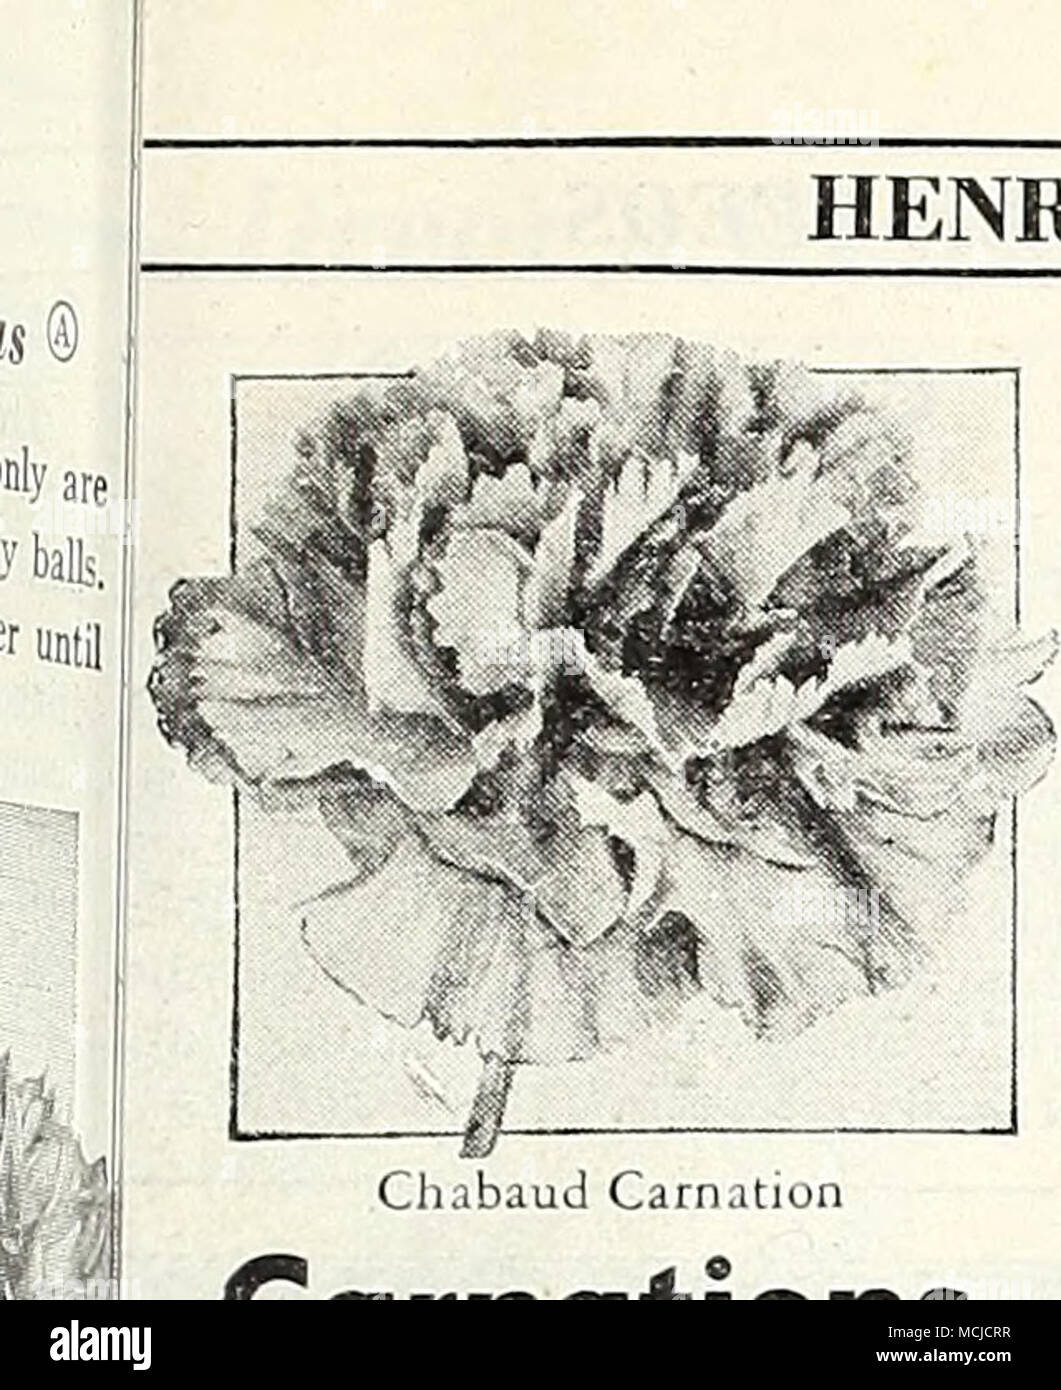 . HENRY A. DKEER, Inc., Philadelphia, Pa. r Carnations anthus caryophyllus @ & [hhp] [ndispensable for greenhouse culture winter and for the summer garden. habaud's Giant Double [nup] Richly clove-scented, large double ooms measuring 2 inches or more ross. Often grown as annuals bloom- 5 in 5 to 6 months from sowing. 2 ft. '61 Blood Red 1767 Scarlef 64 Deep Salmon 1768 Whi^e 65 Rose 1769 Yellow Any of the above: Pkt. 15c; large pkt. 60c. 4780 Chnbaud Carnation Collection One packet each of the rp six colors, value 90c, for OJ' ,1 770 Finest Mixed. All colors. Pkt. 15c; large pkt. 60c; 'A o - Stock Image